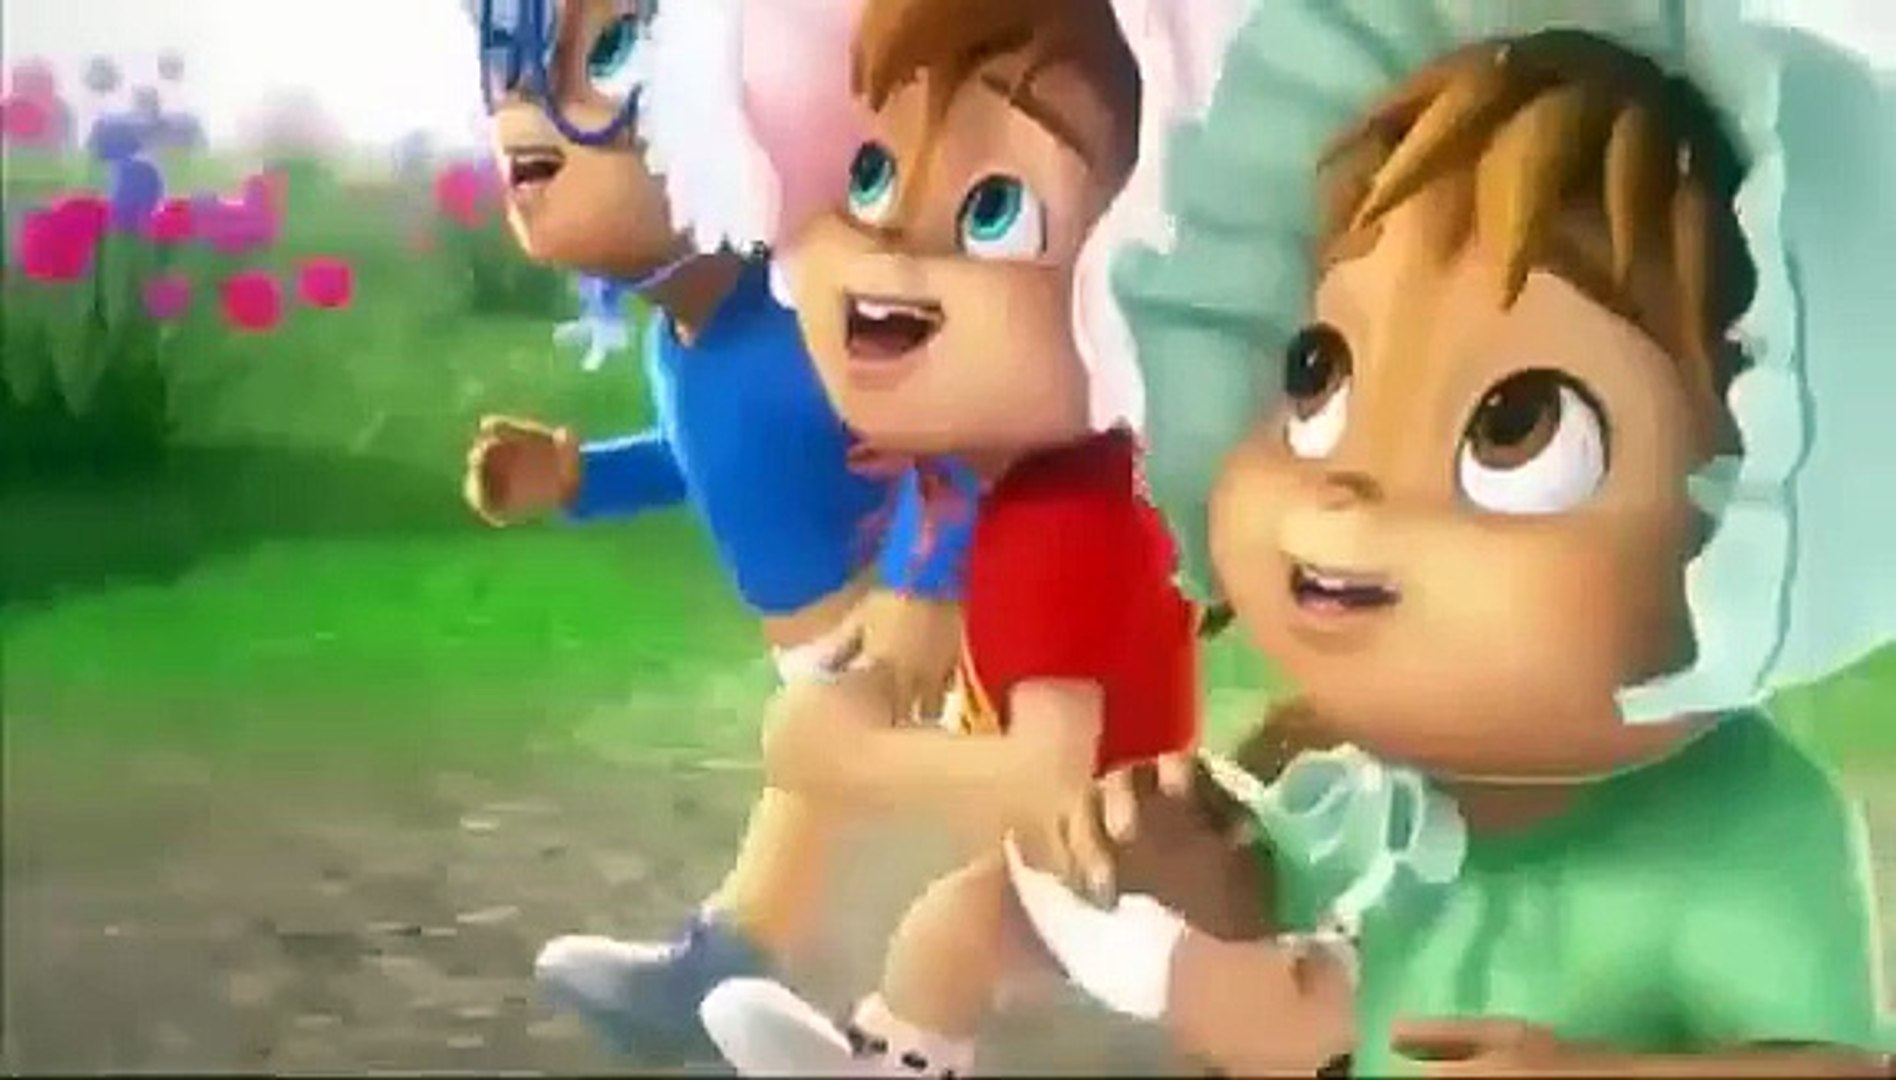 Alvinnn And The Chipmunks Brittany And Alvin alvinnn-alvin and the-chipmunks - cartoons for kids